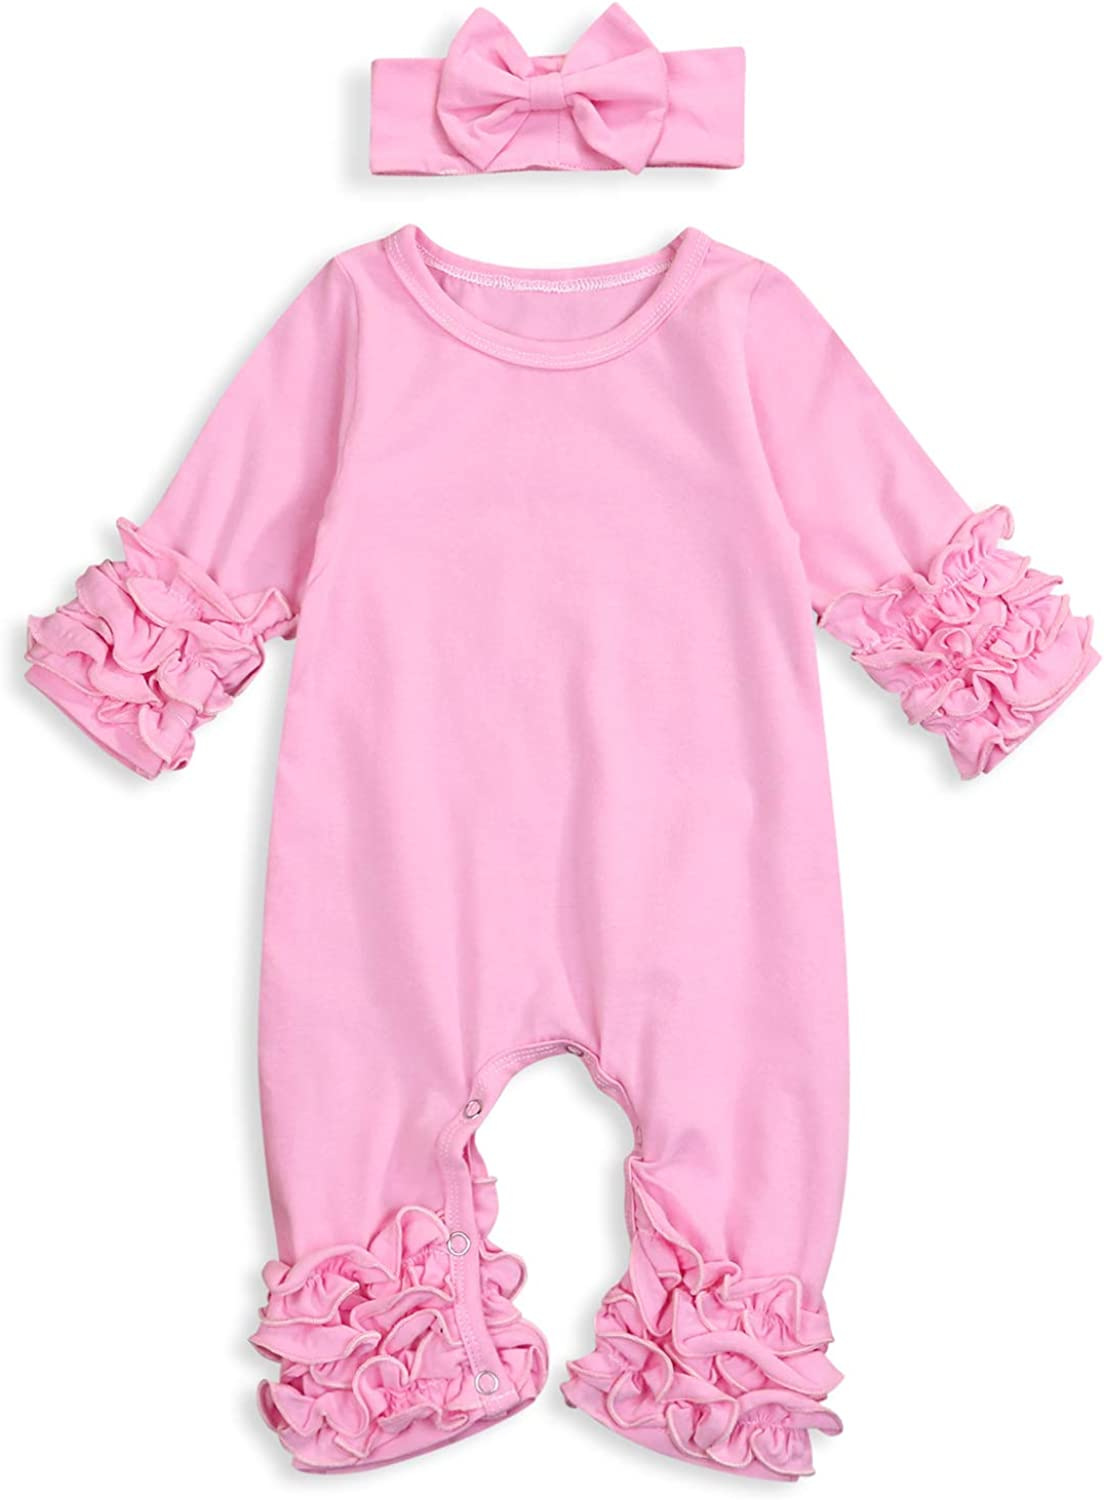 Newborn Baby Girls Fold Ruffle Jumpsuit Infant Solid Romper Long Sleeve One-Piece Coming Home Outfits+Headband